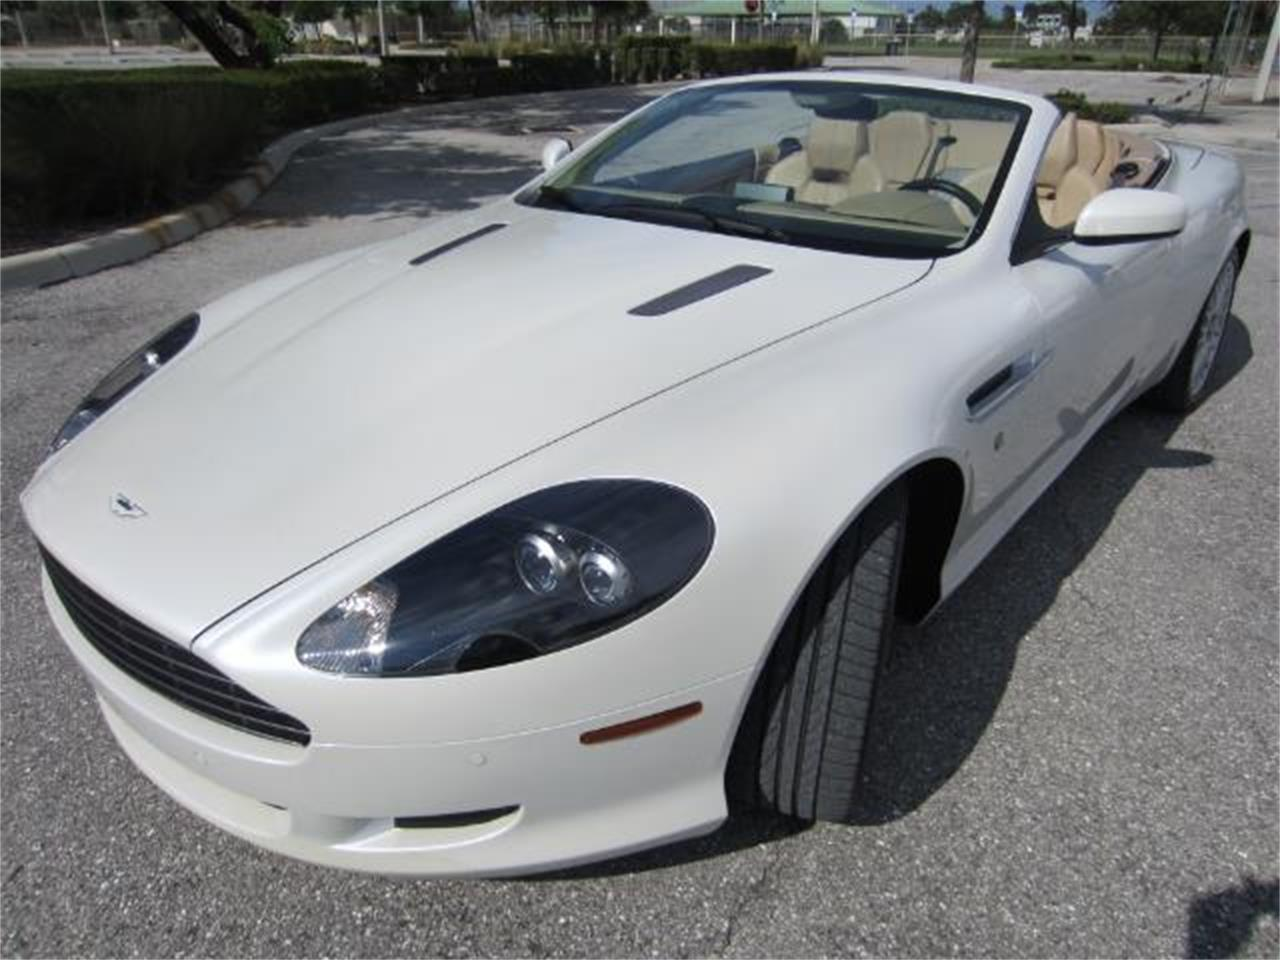 Large Picture of '09 Aston Martin DB9 located in Florida - $64,900.00 - L8Y9